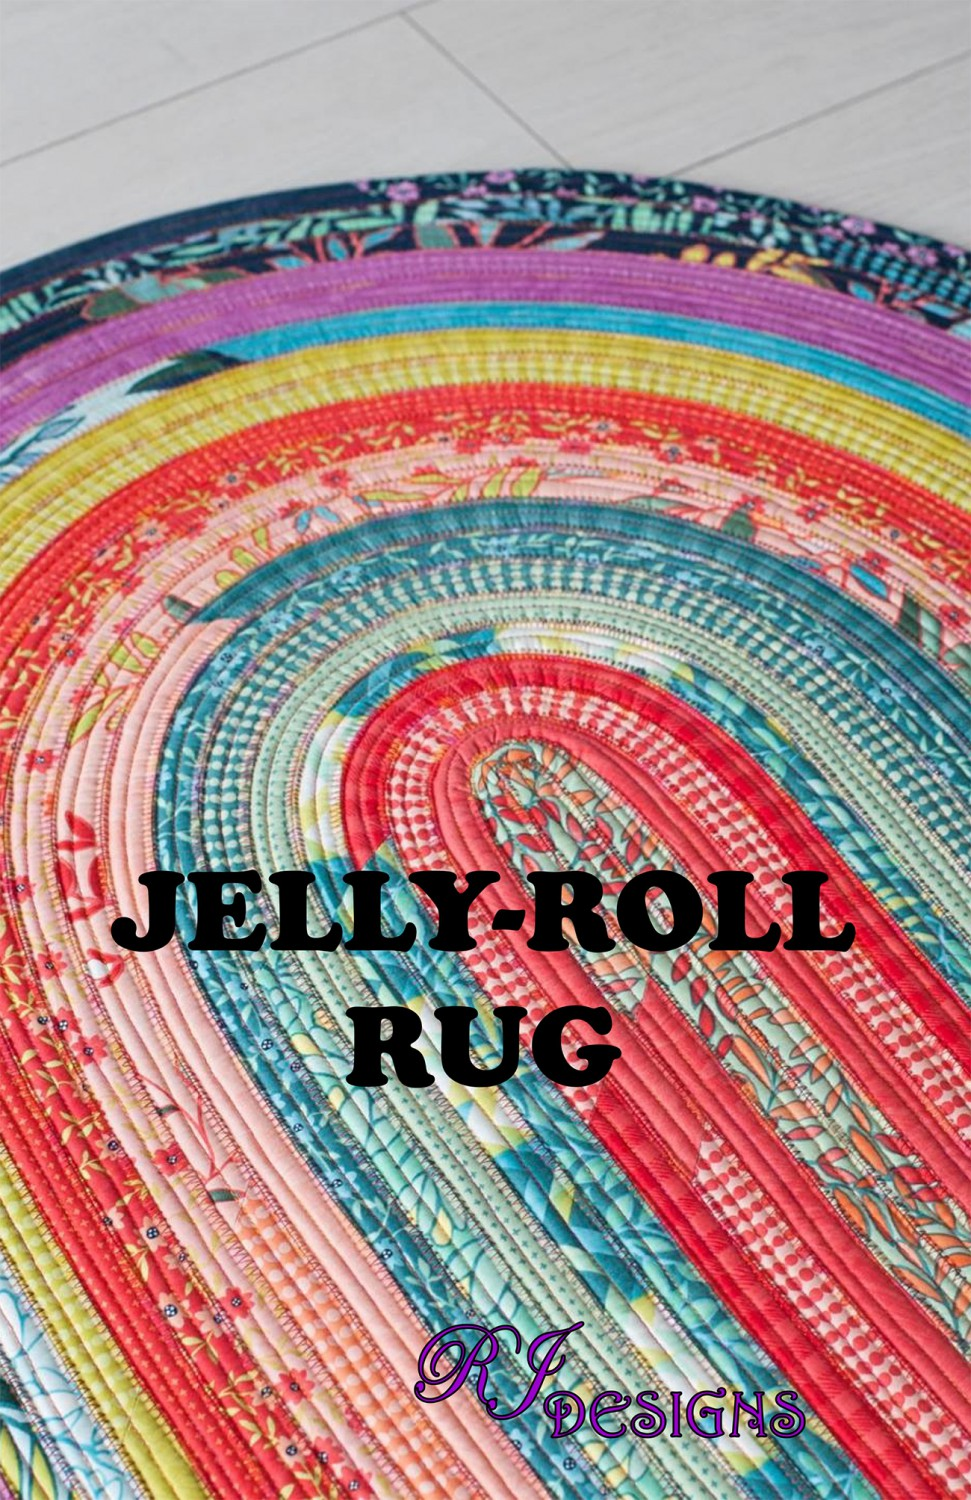 JELLY ROLL PATTERN - Up to three jelly rolls can be shipped for $7.40 USPS Priority. For a limited time, Purchase a regular price jelly roll receive a JELLY ROLL RUG PATTERN free! ($10.00 value).One free pattern per customer. While supplies last.